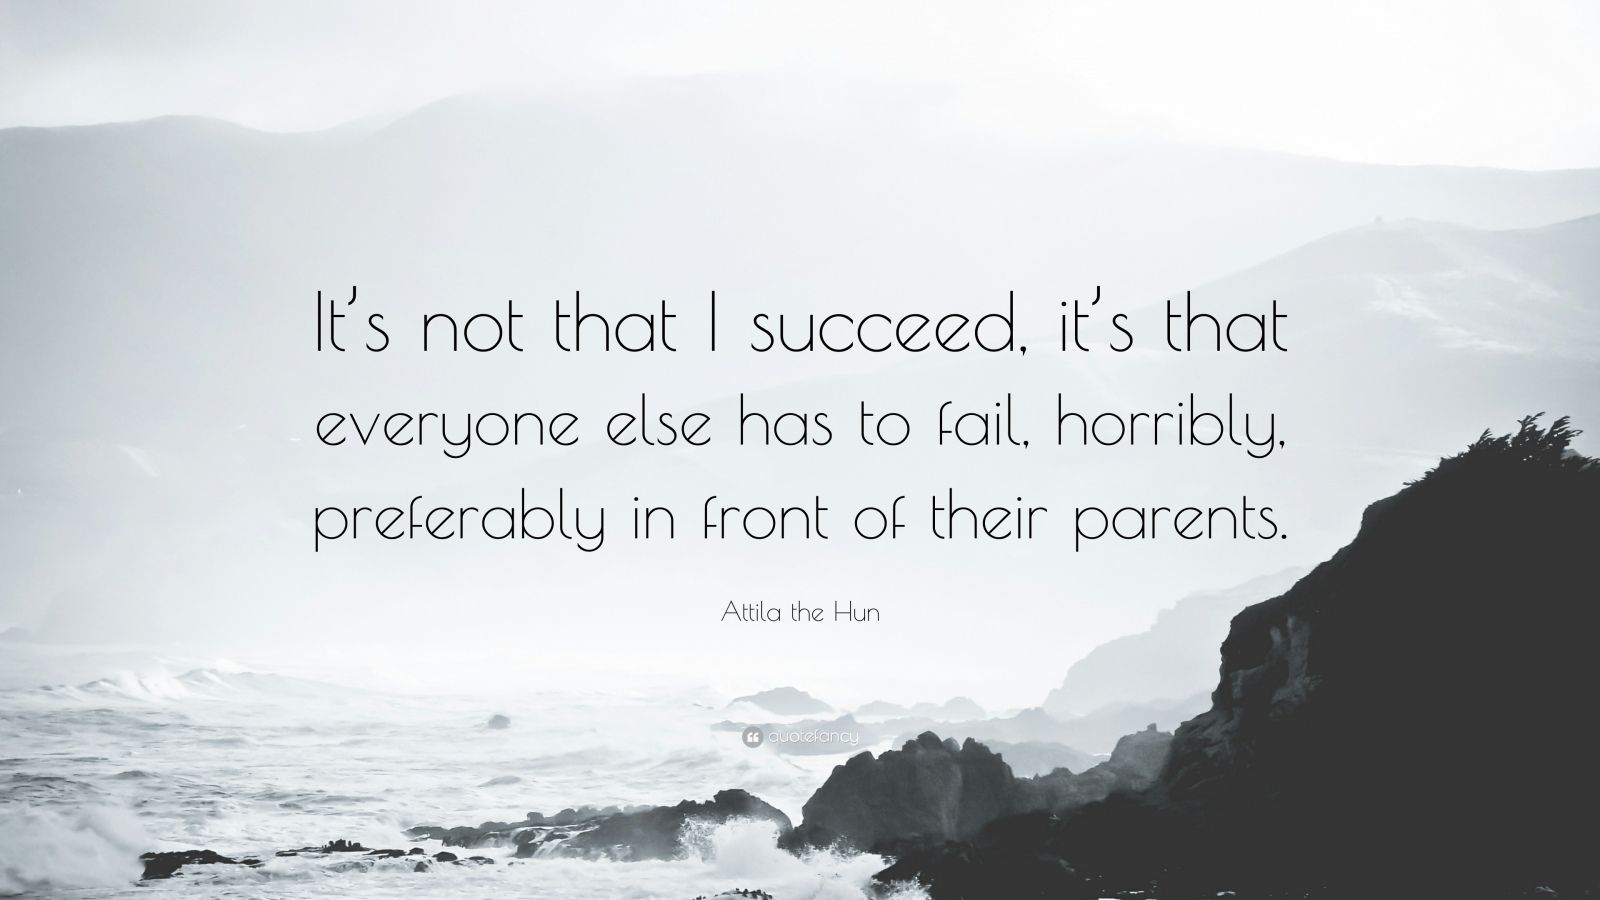 """Attila the Hun Quote: """"It's not that I succeed, it's that everyone else has to fail, horribly, preferably in front of their parents."""""""